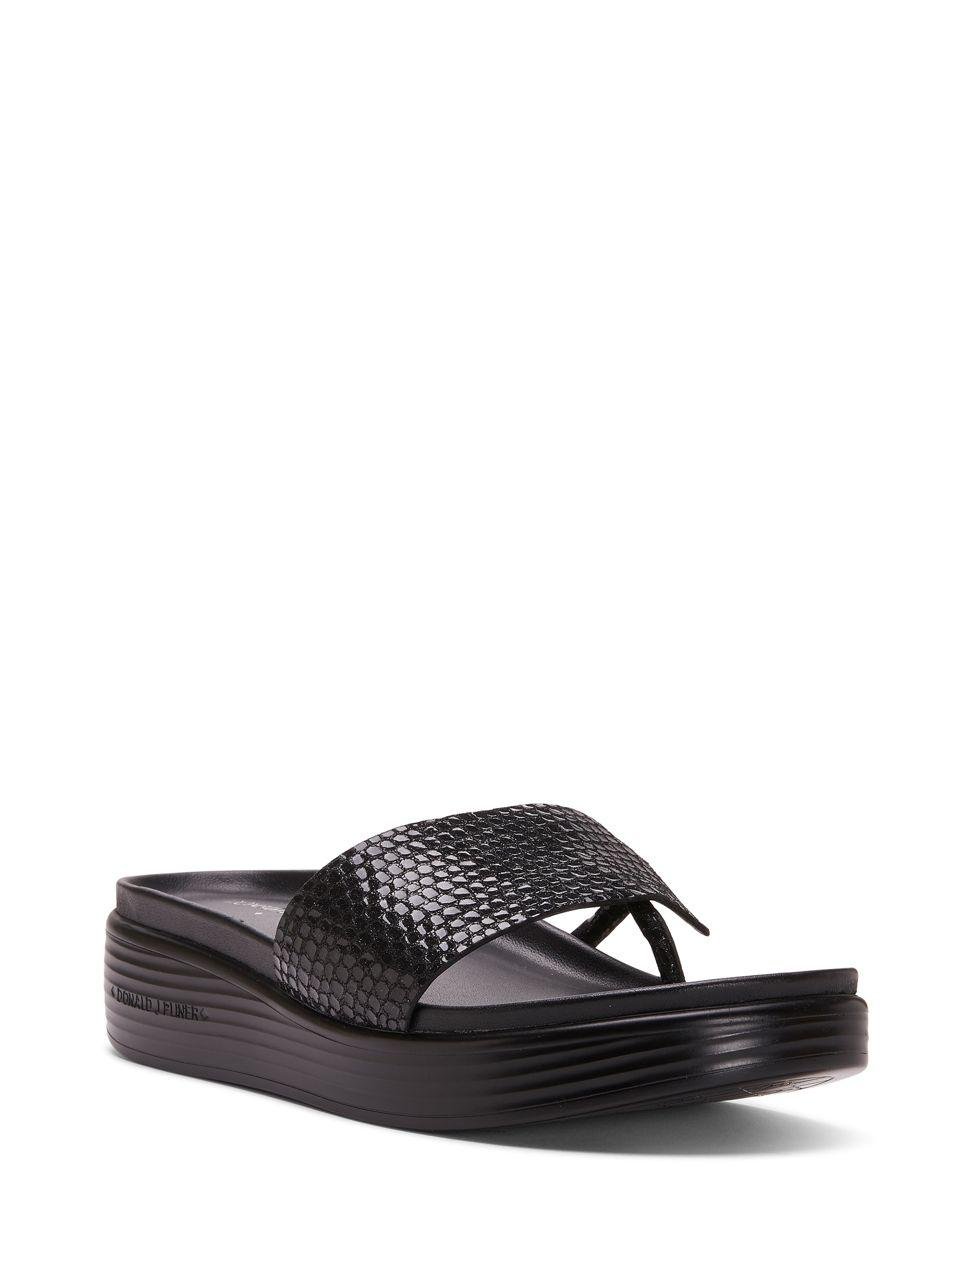 Donald J Pliner Fifi18 Platform Sandals In Black Lyst